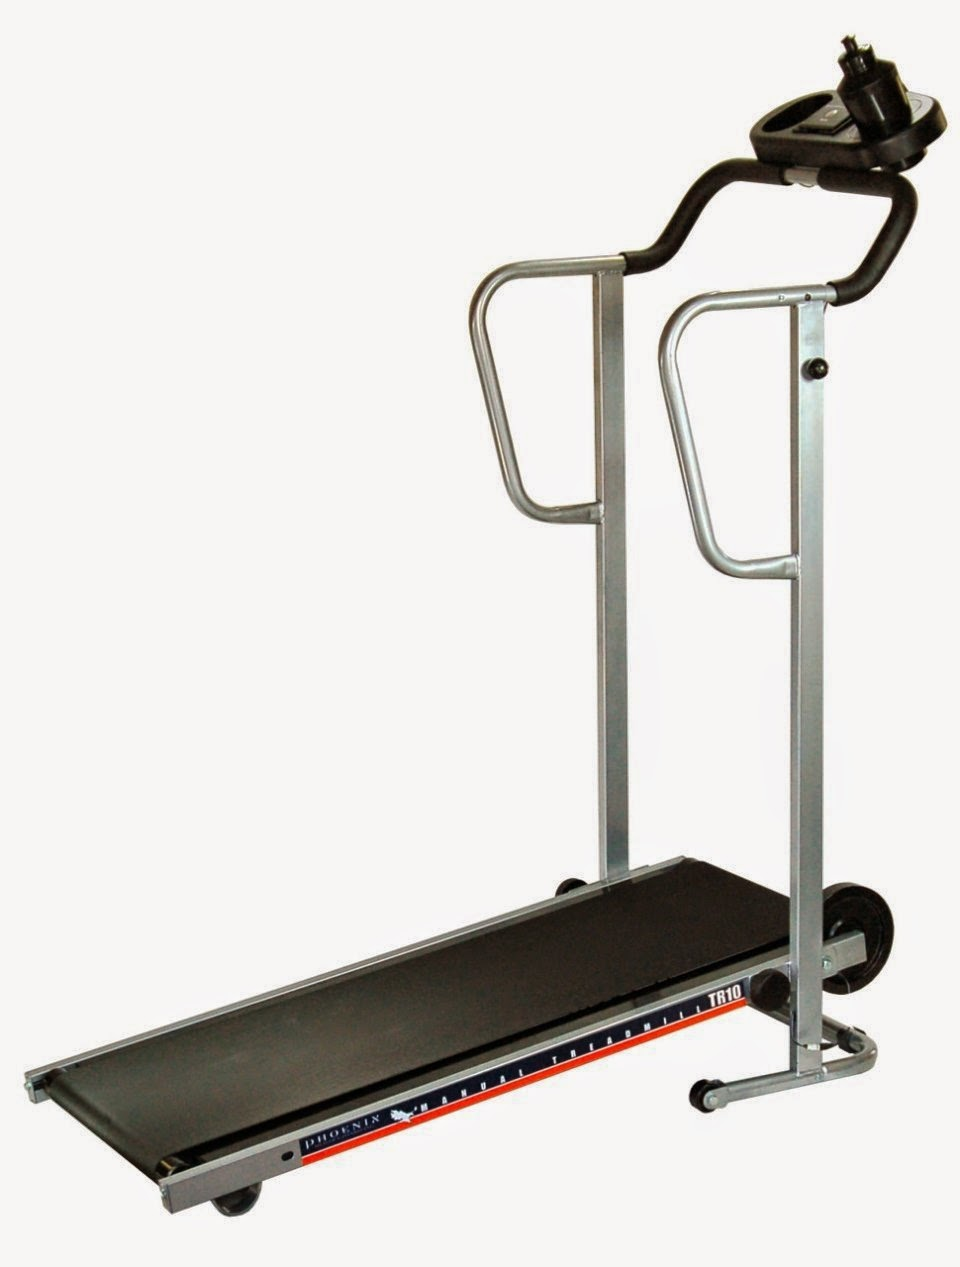 Phoenix 98510 Easy-Up Manual Treadmill, picture, image, one of the top best 3 treadmills under $300, review features & specifications, buy at discounted low price